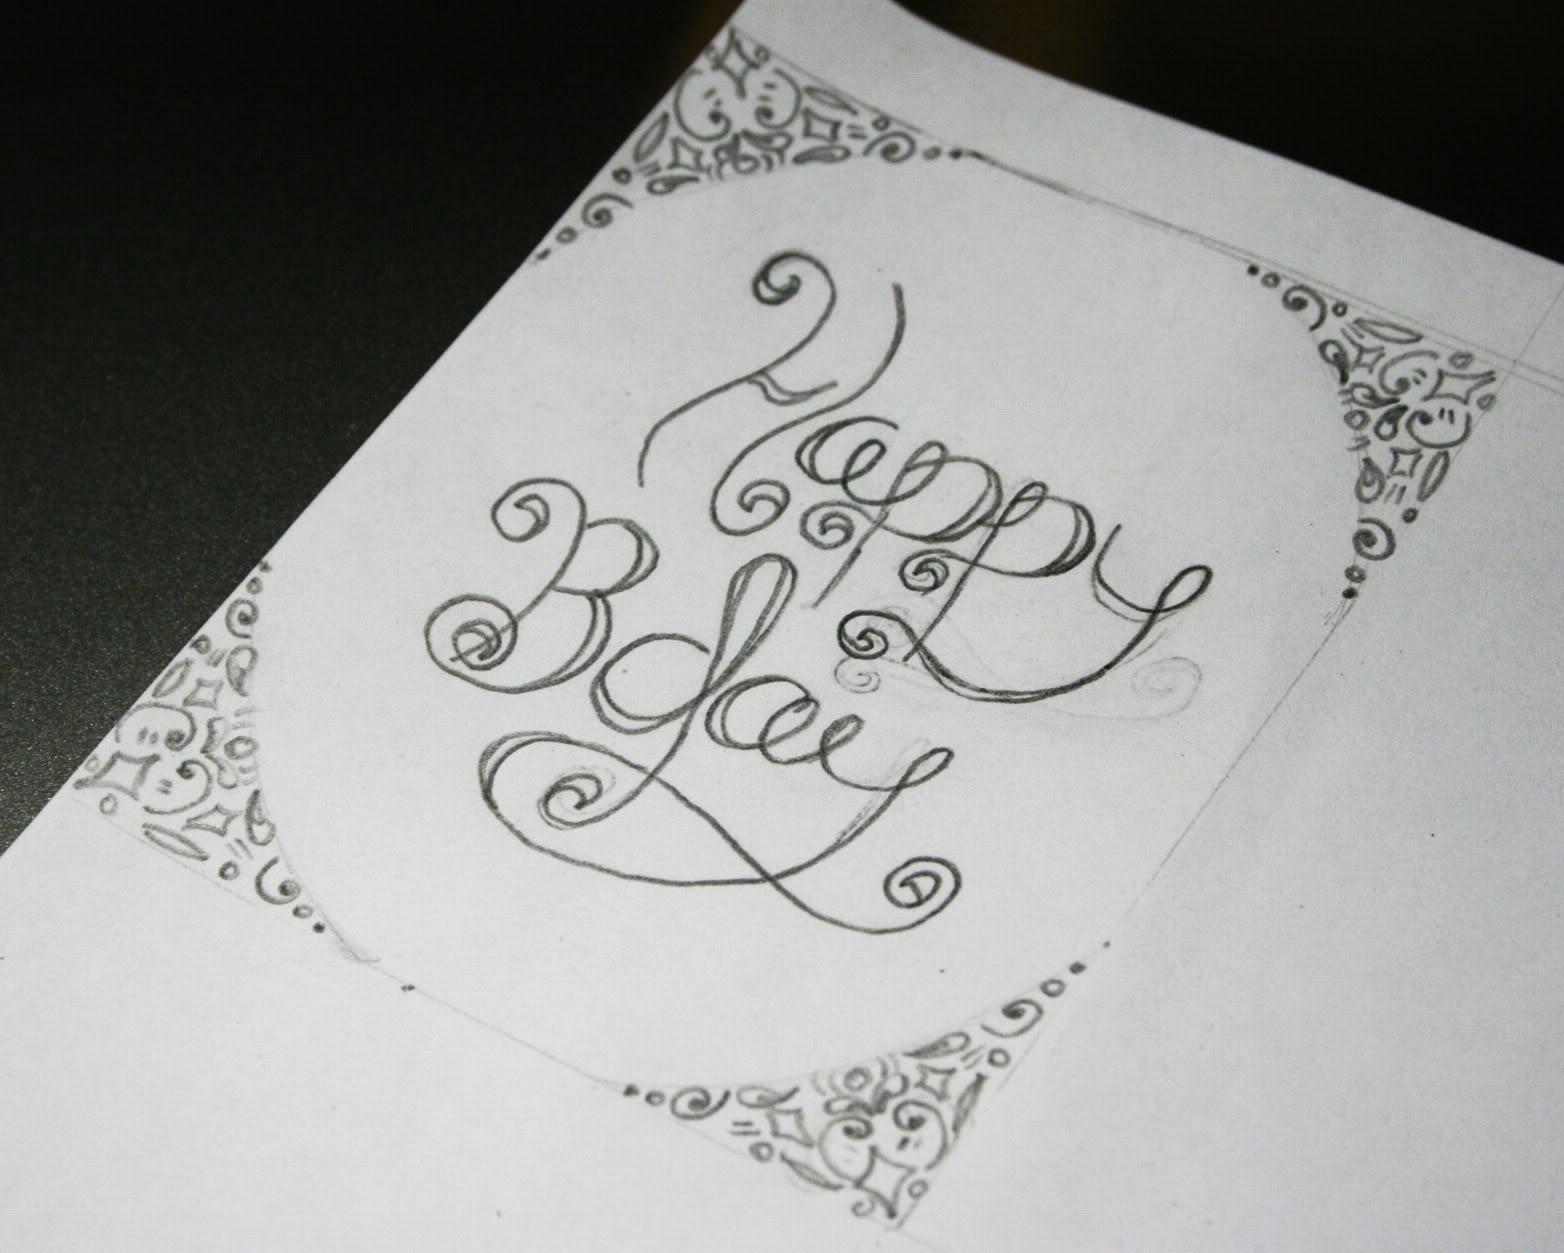 birthday card designs to draw ; things-to-draw-on-a-birthday-card-awesome-happy-birthday-designs-to-draw-how-to-draw-happy-birthday-in-3d-of-things-to-draw-on-a-birthday-card